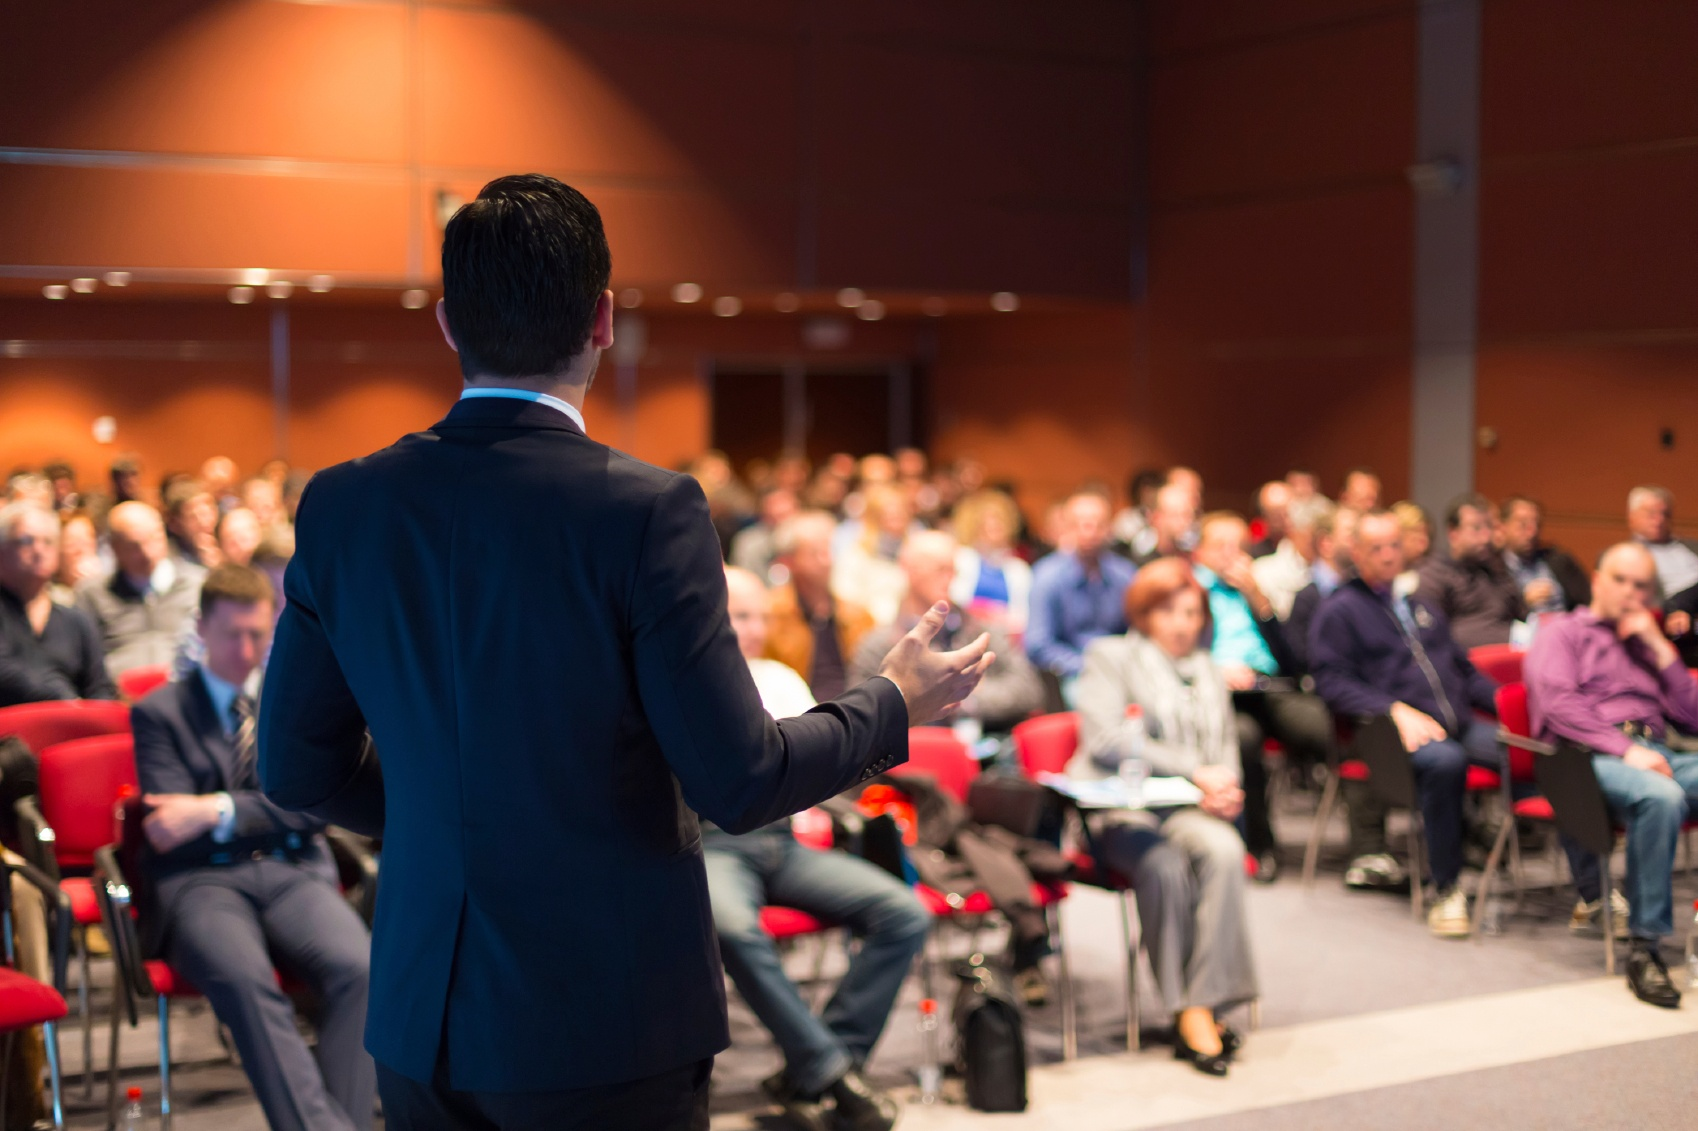 A-man-speaking-at-a-business-conference-000040536788_Medium.jpg